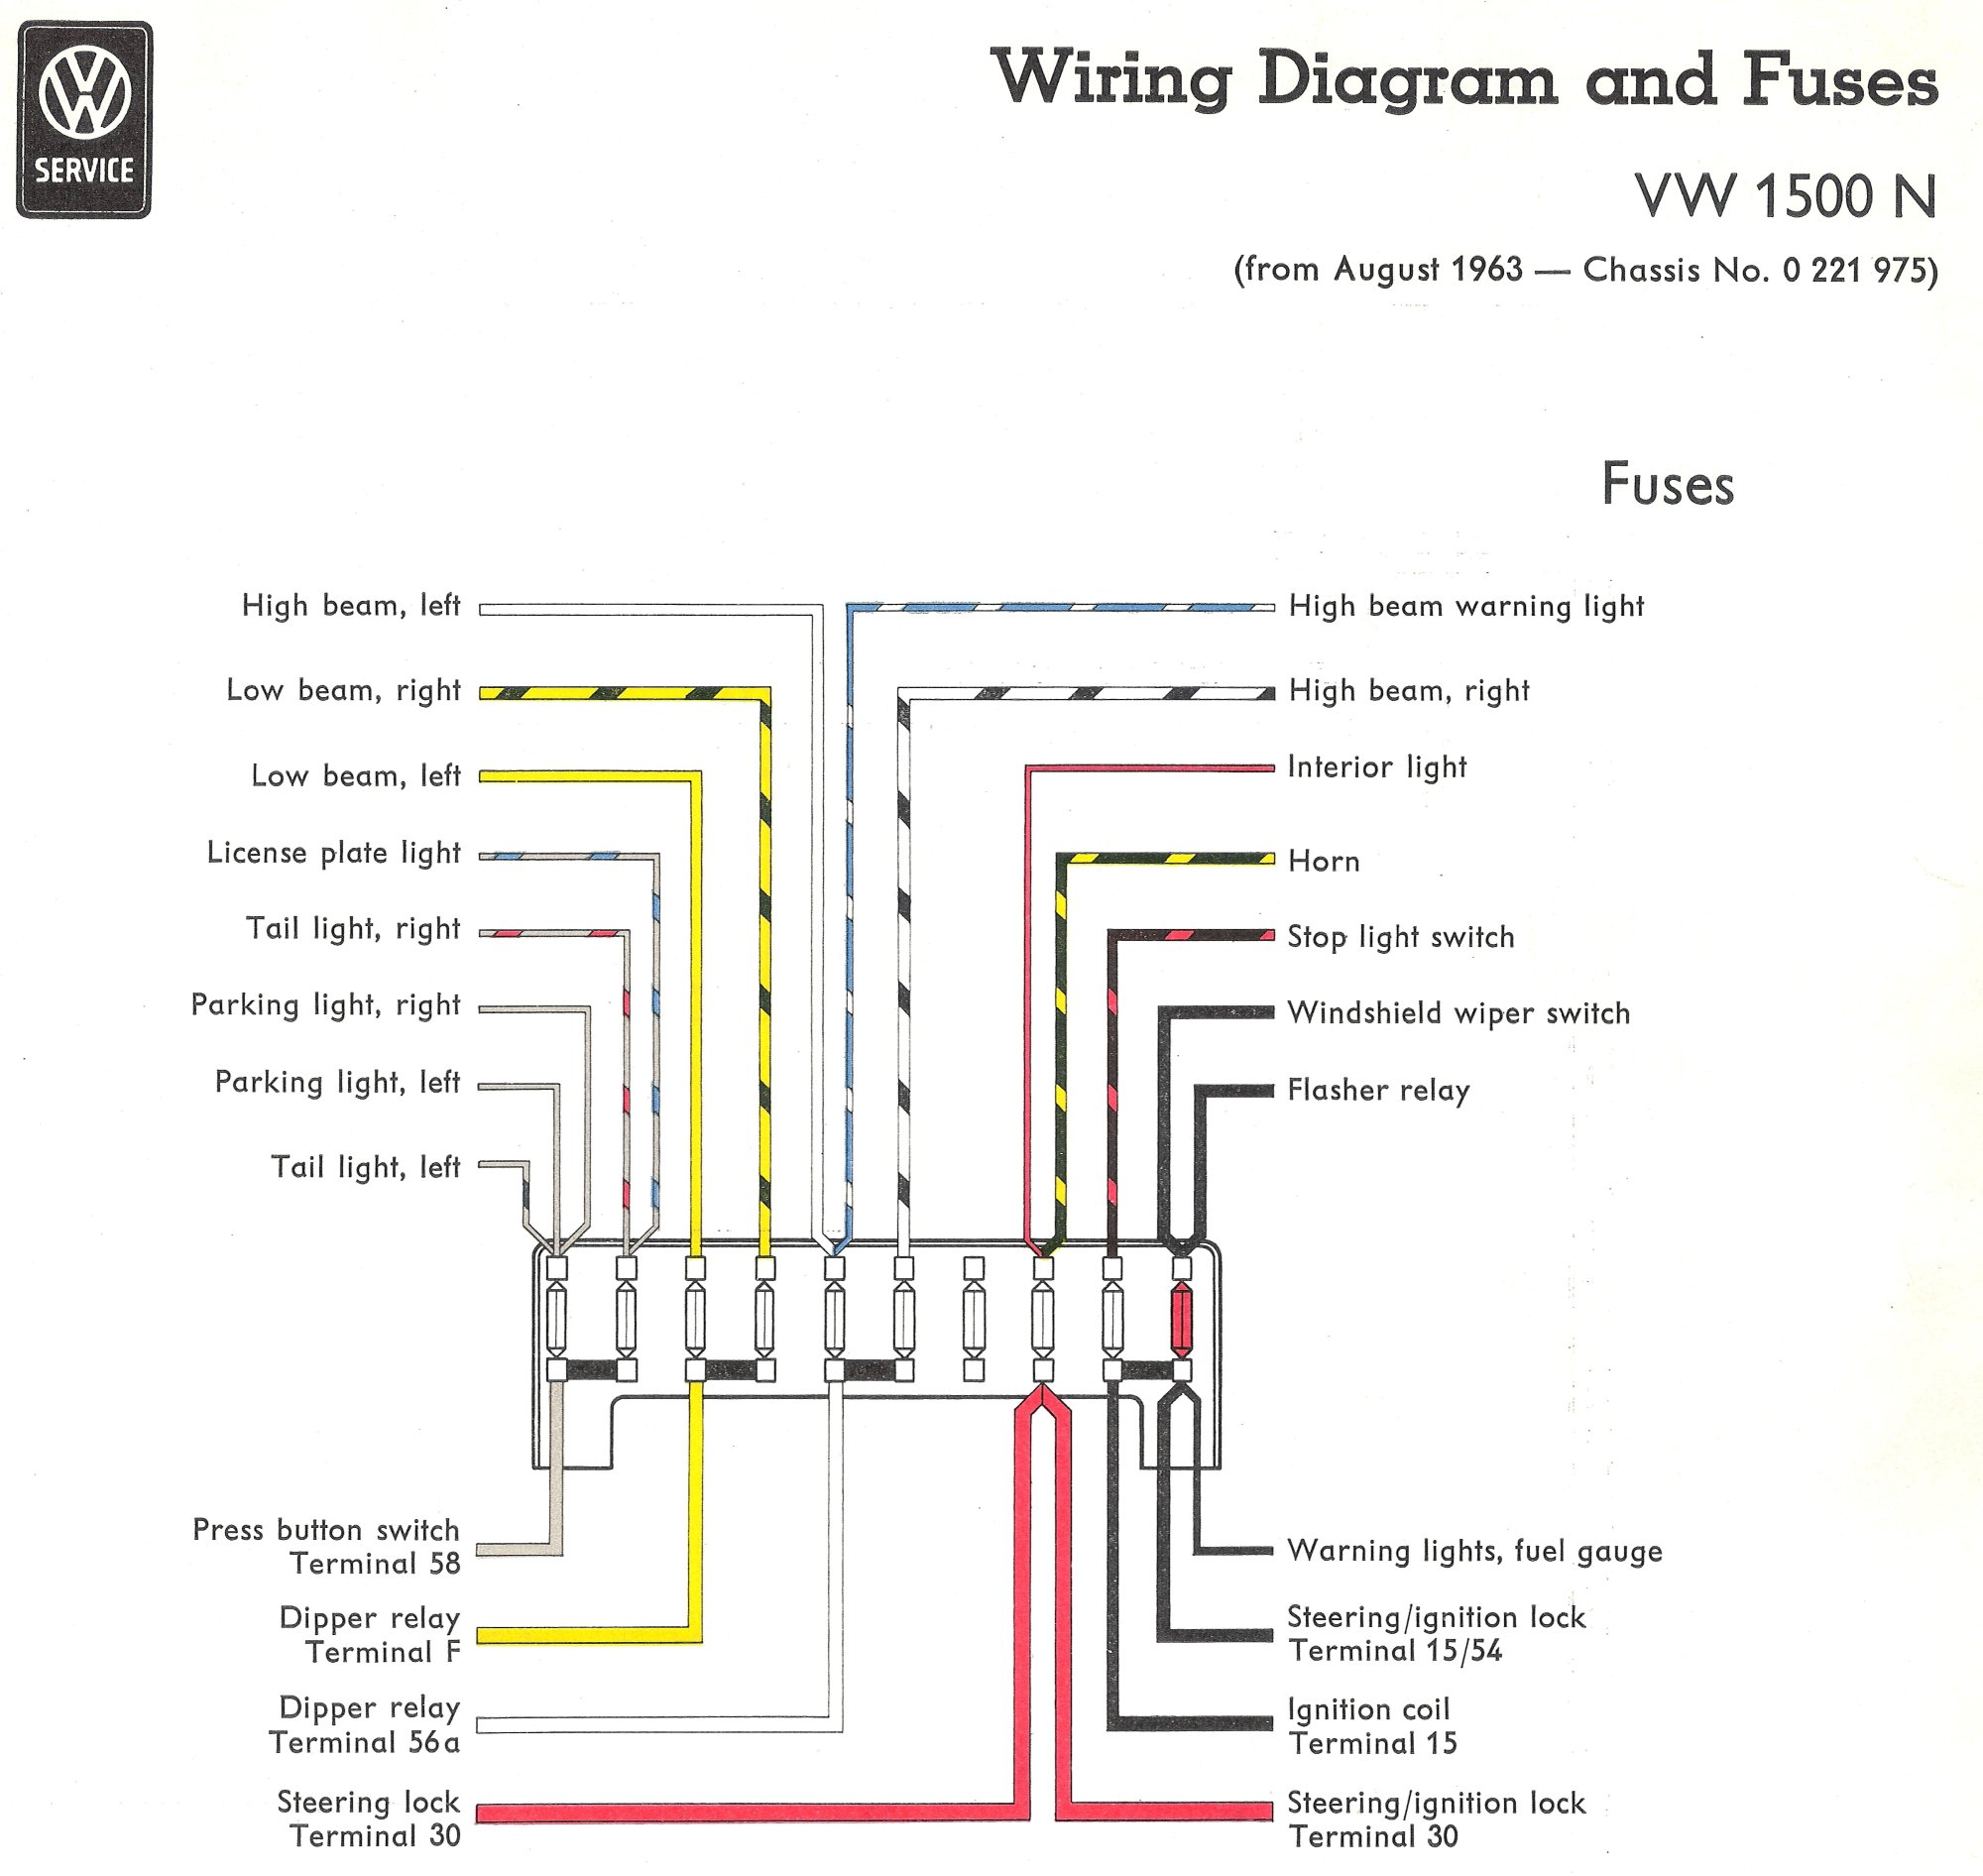 hight resolution of 1965 vw fuse box nice place to get wiring diagram u20221965 vw fuse box diagram